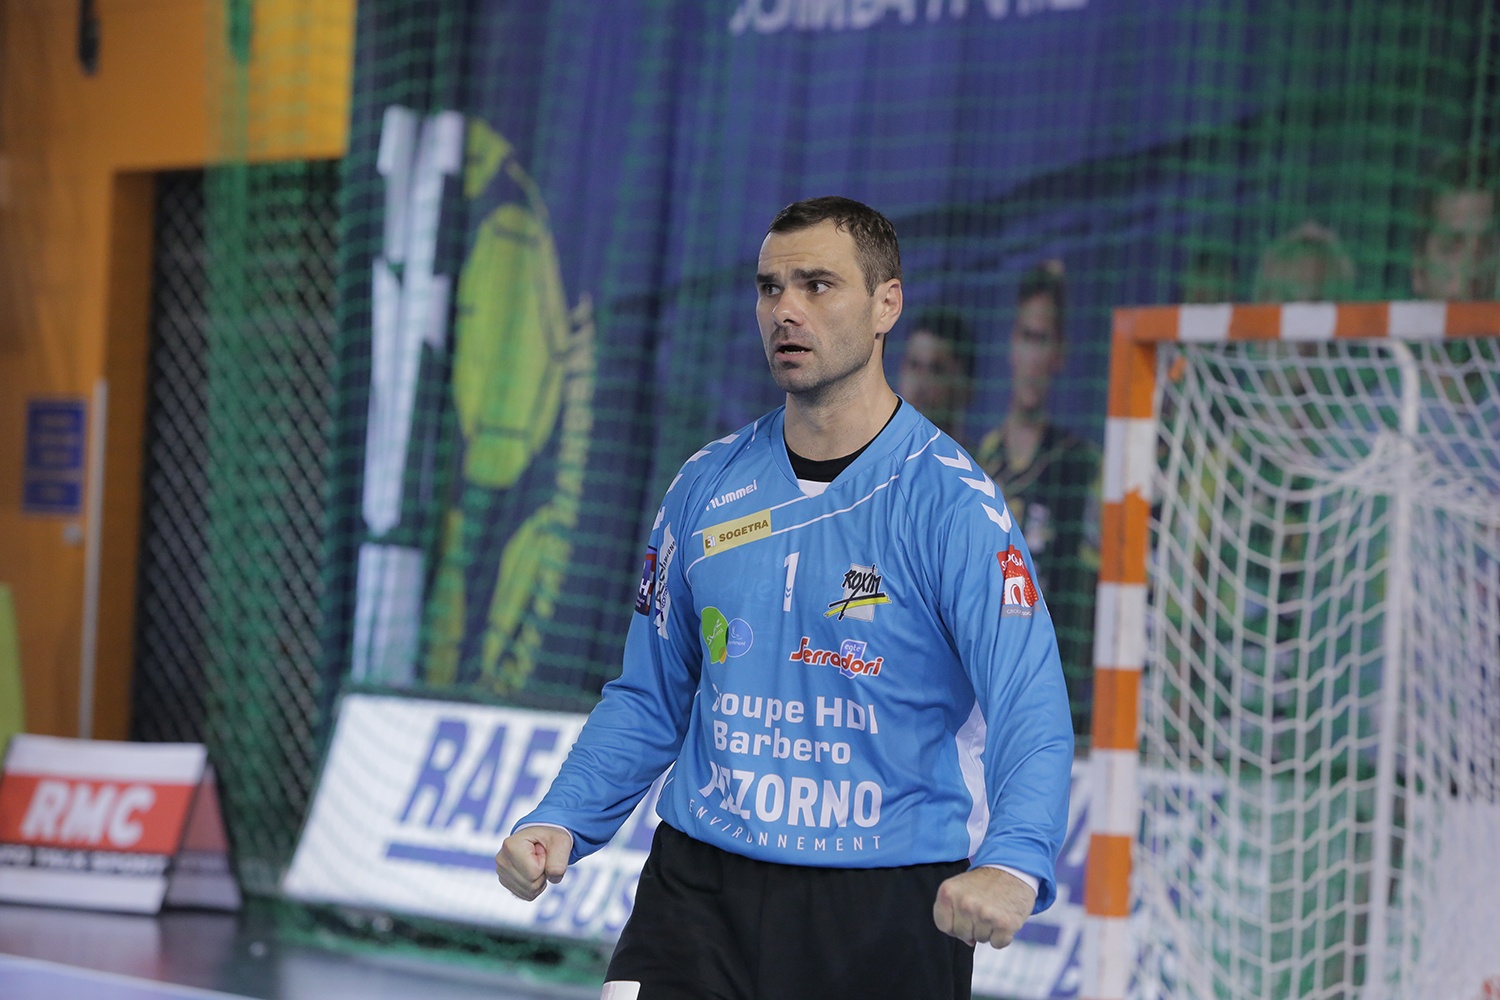 Slavisa Djukanovic | Handball Goalkeeper SRVHB by ML Terrier le 21 septembre 2014